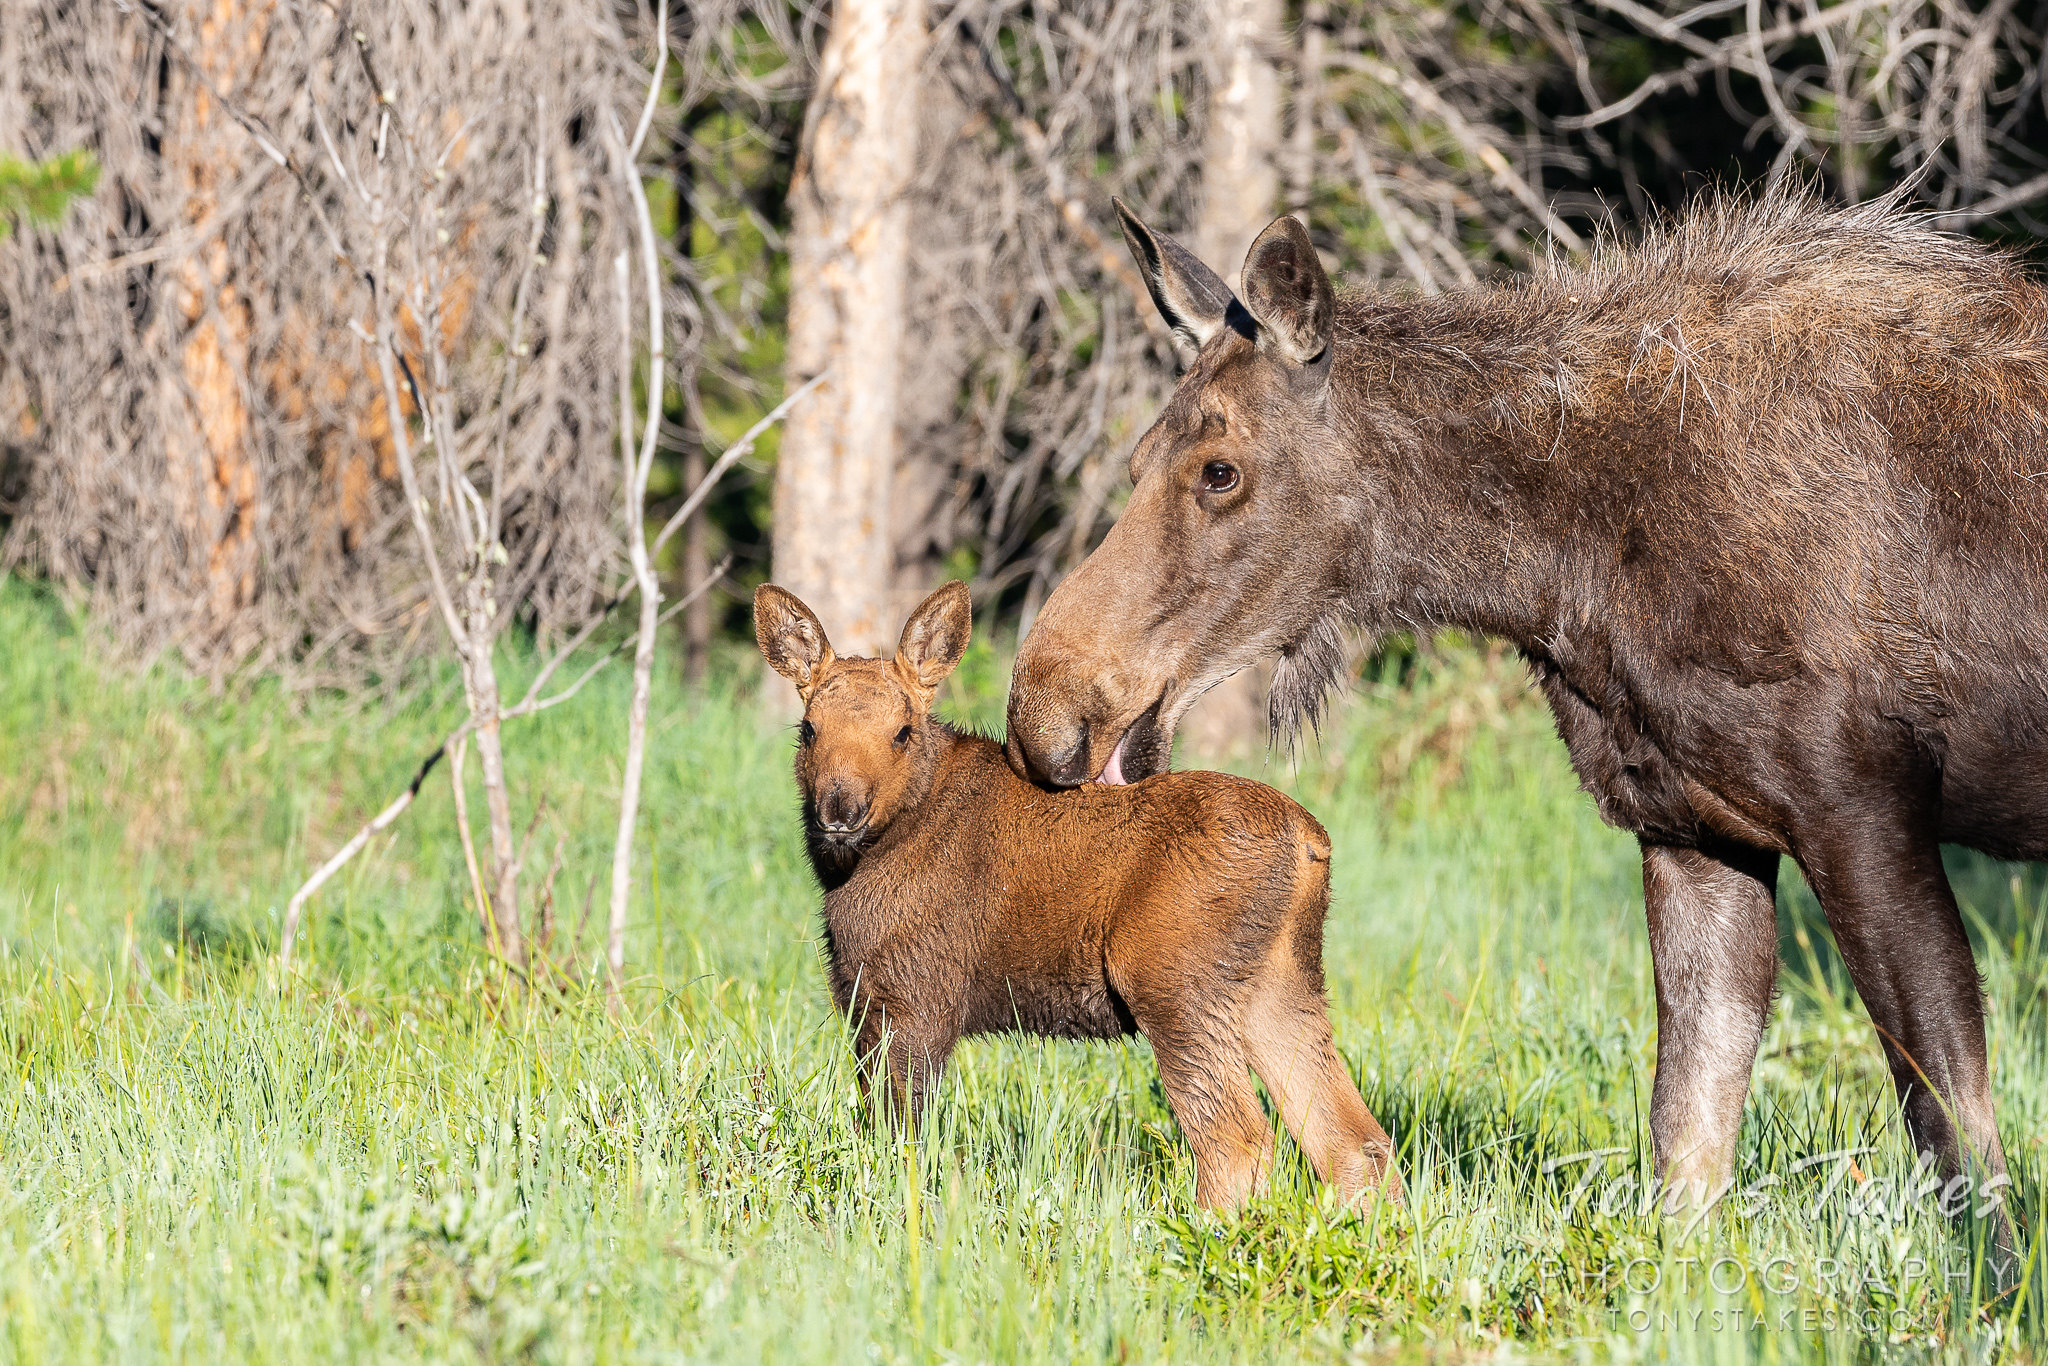 Moose calf gets a bath from mama